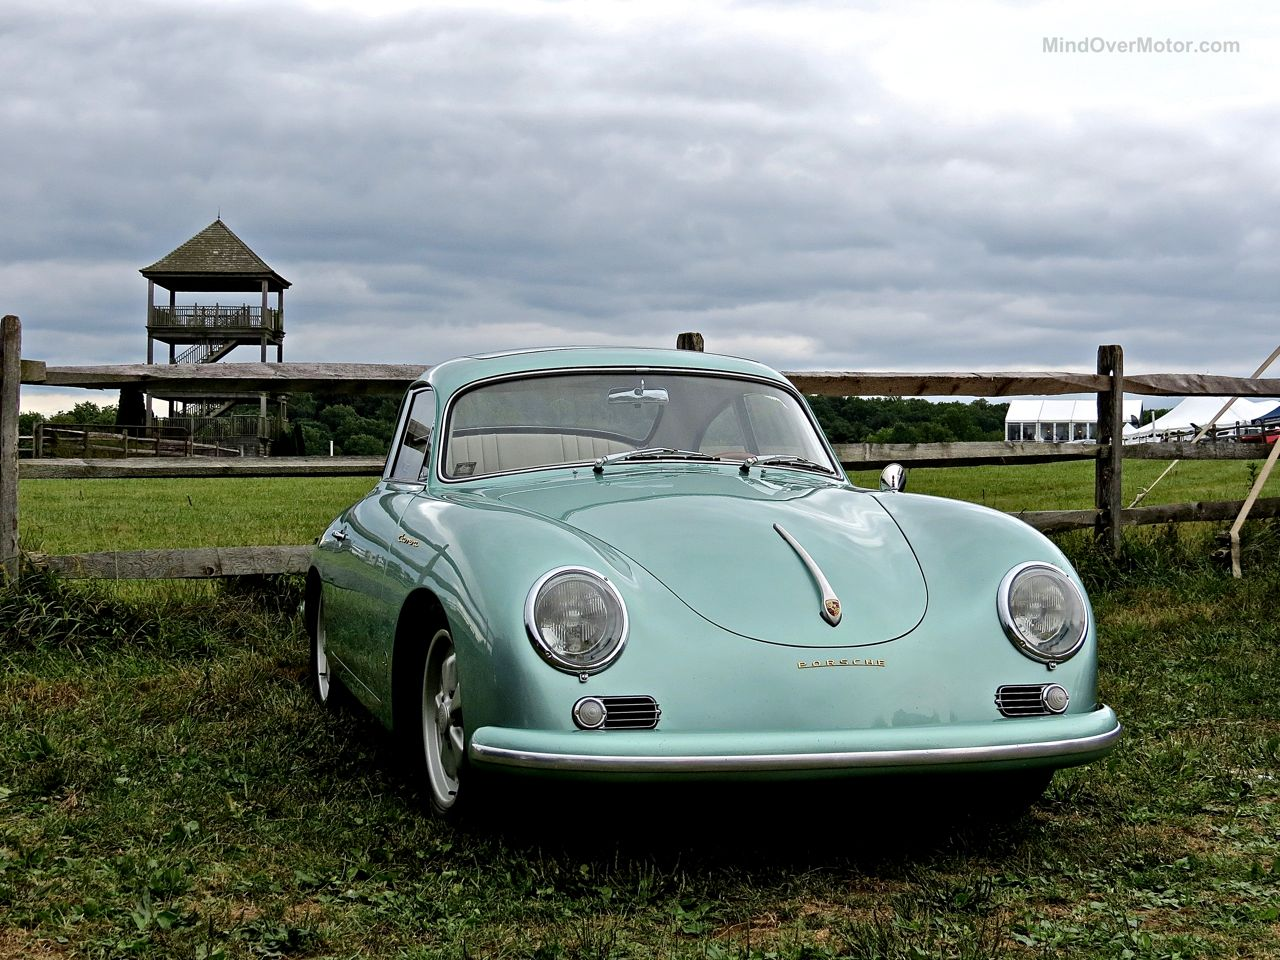 Radnor Hunt Porsche 356 Green